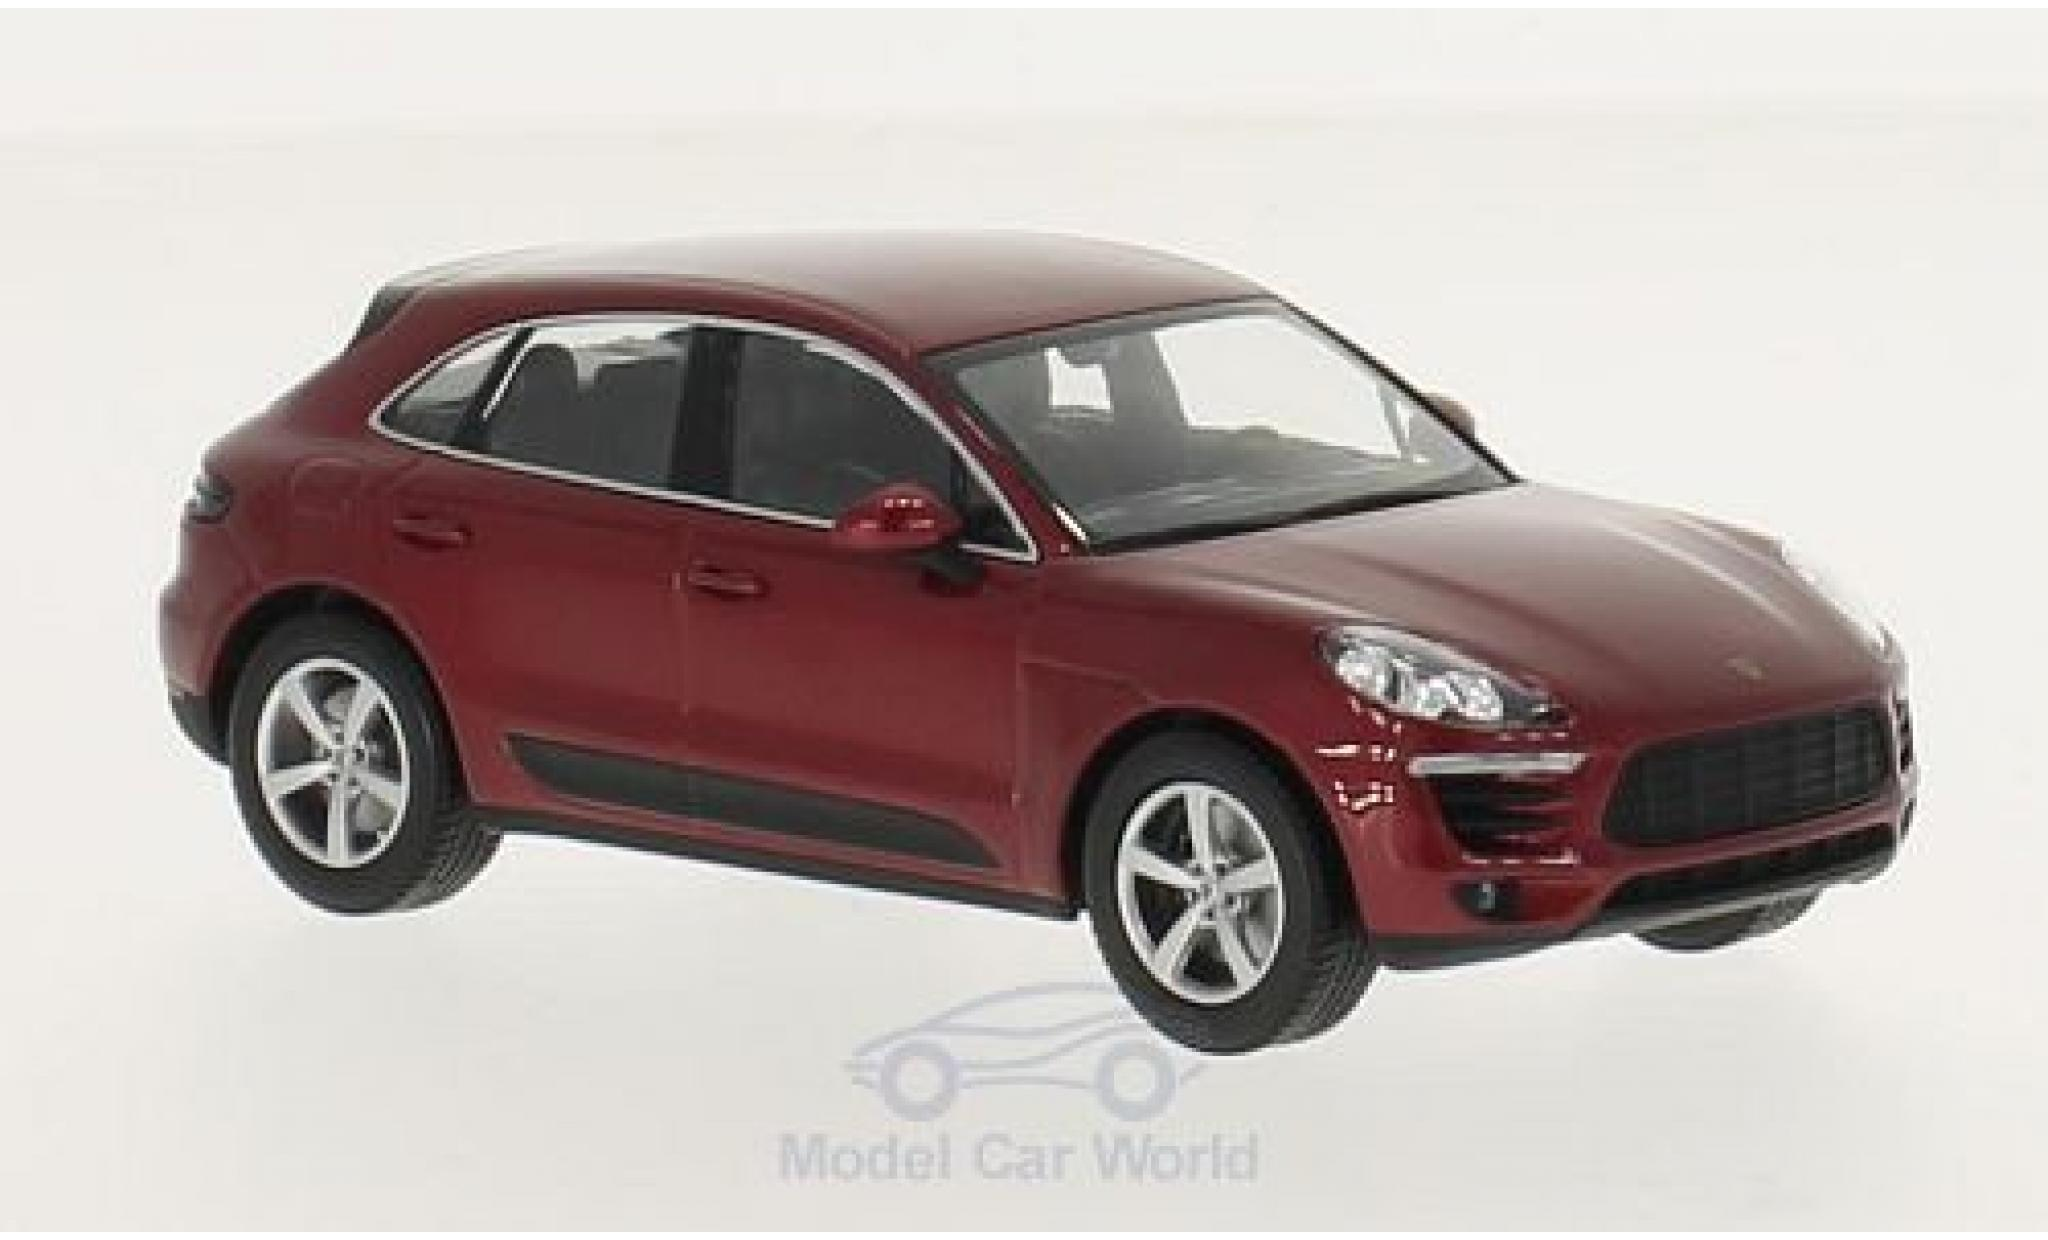 Porsche Macan 1/43 Minichamps metallic-red 2013